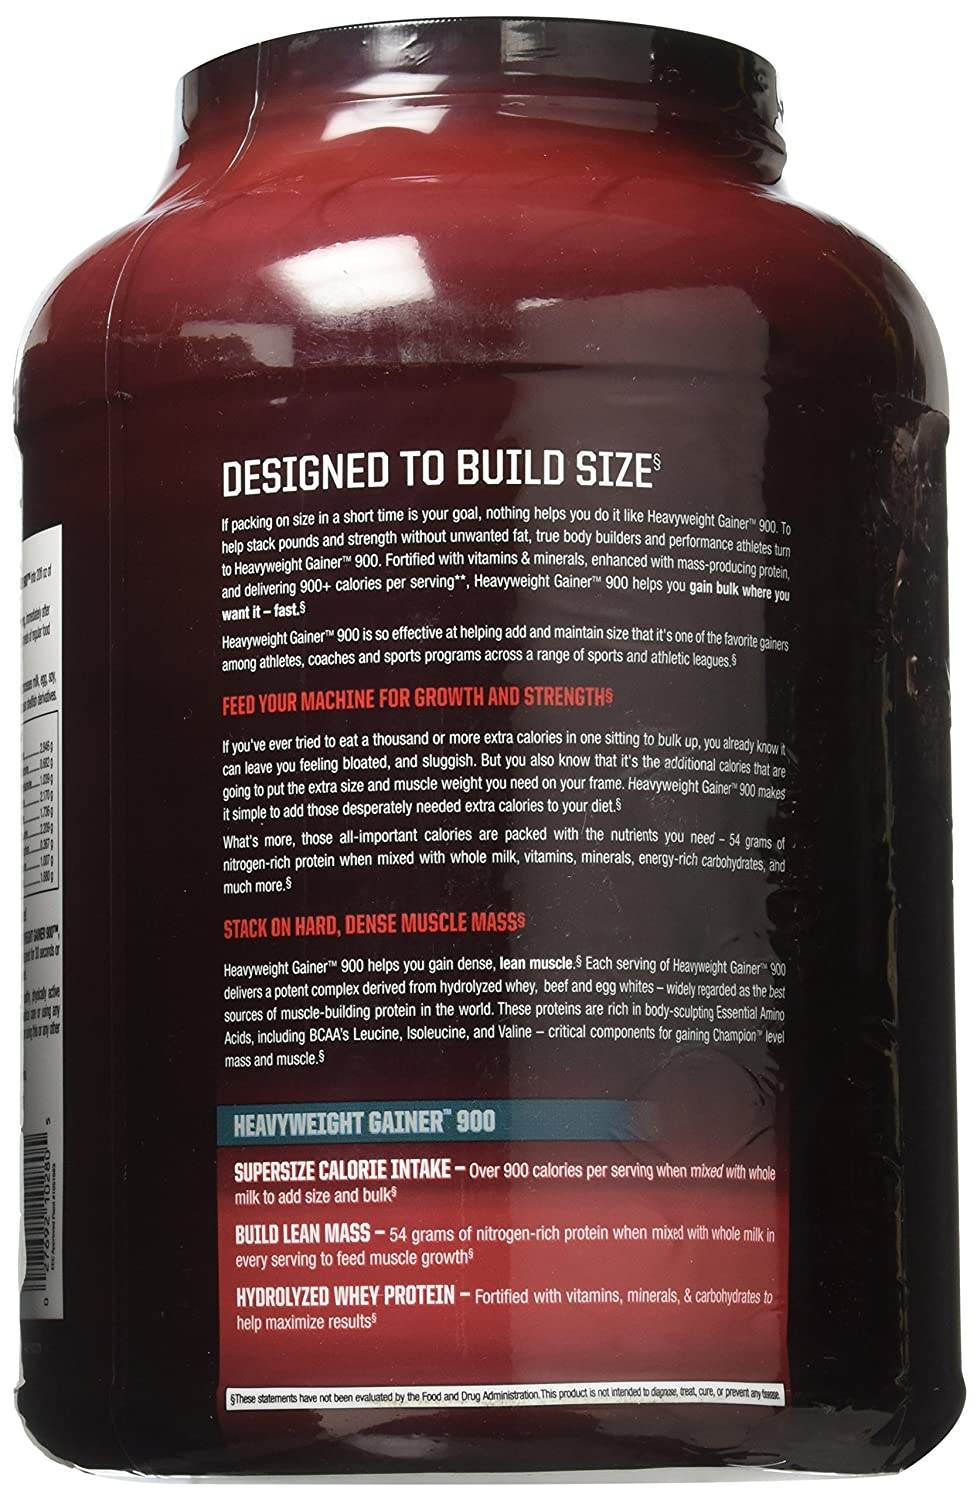 a65f86a2c11 Amazon.com  Champion Performance - Heavyweight Gainer 900 Protein Powder -  Chocolate Brownie - High Density Mass Gainer Sports Supplement